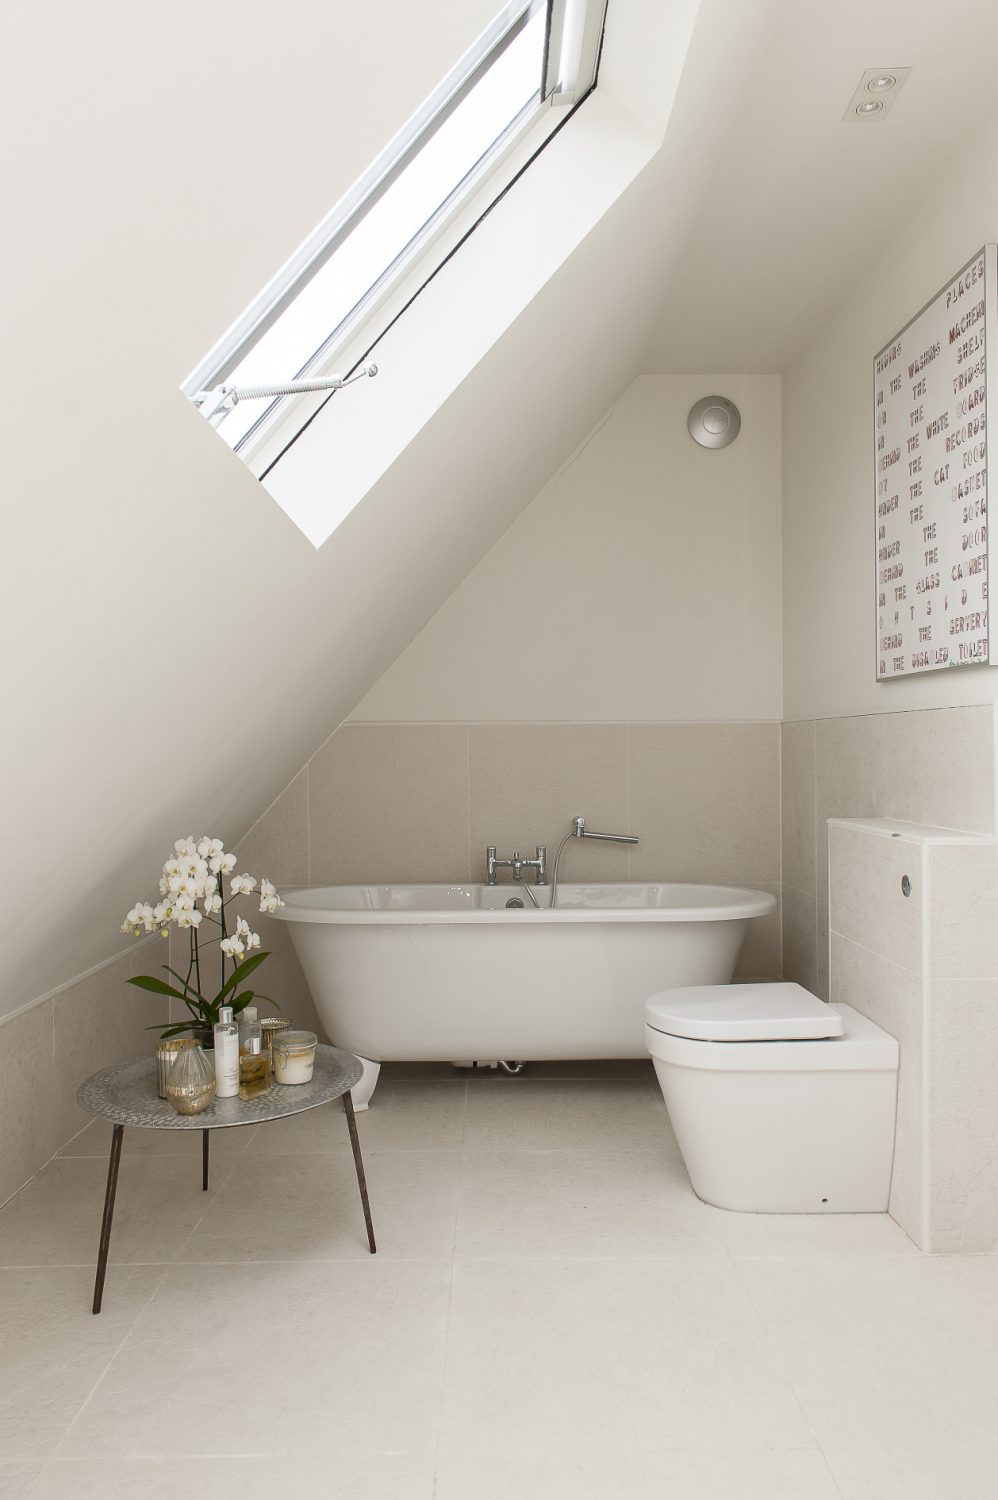 A family bathroom neatly slots into a space under the sloping roof upstairs